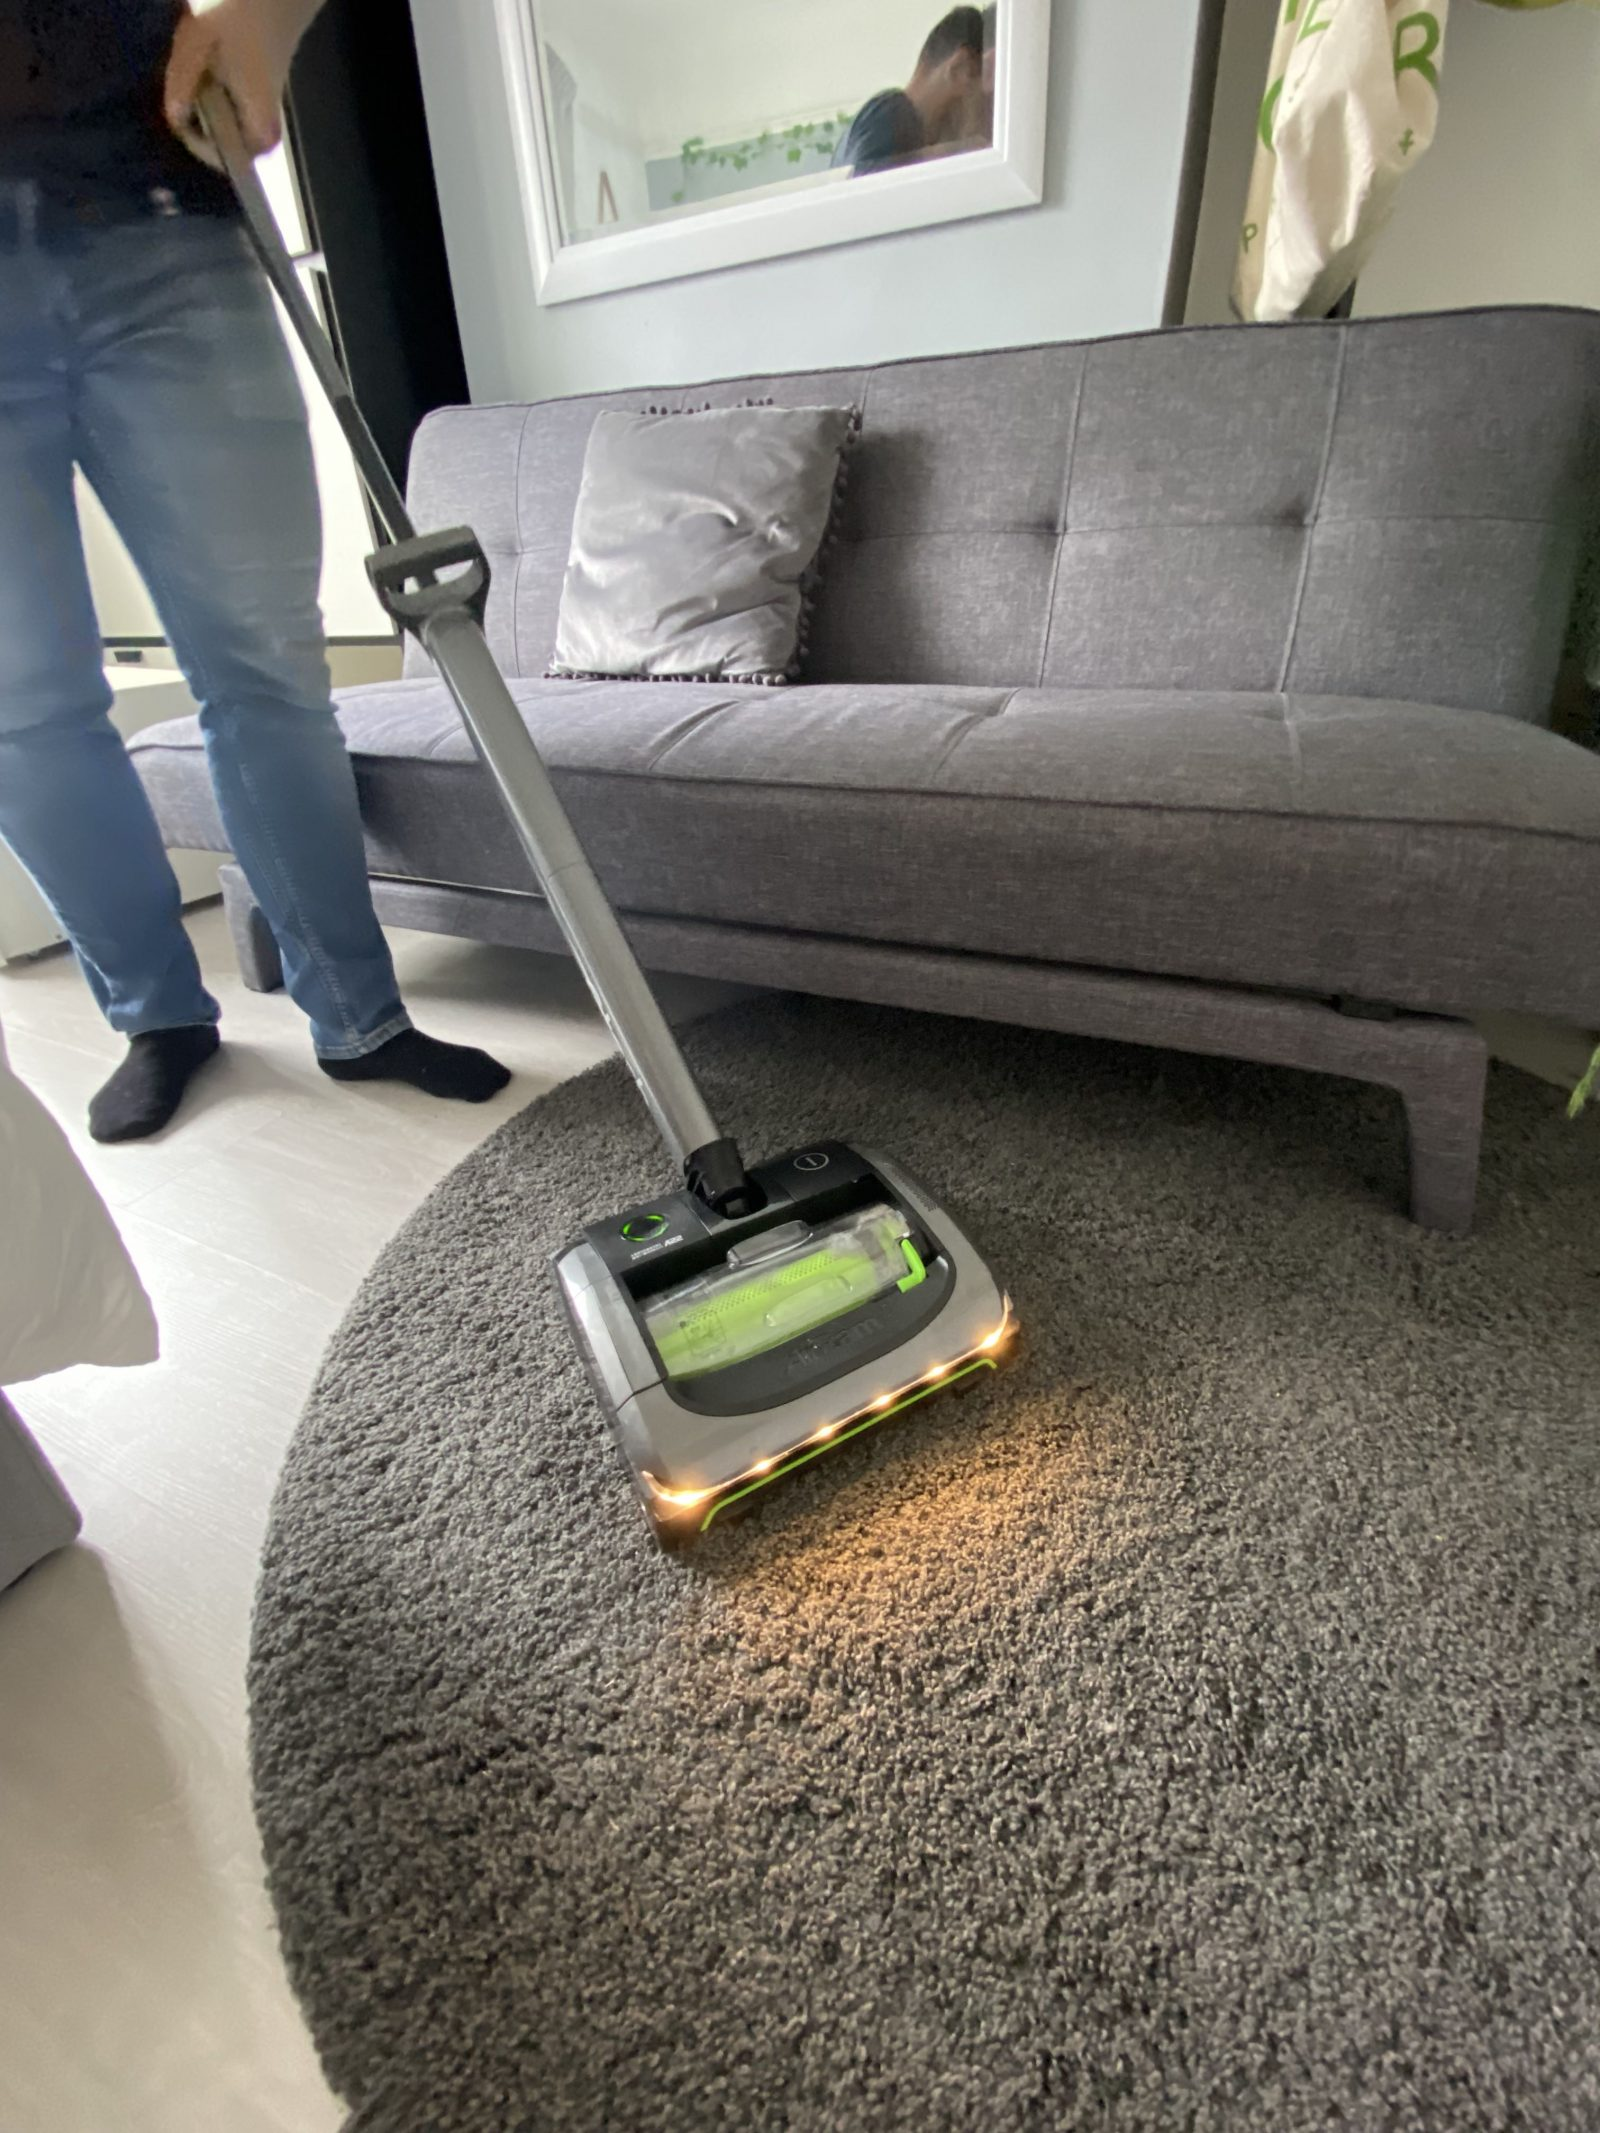 5 Vacuum Cleaners Aimed At Families Reviewed, IMG 4580 1600x2133%, daily-dad%